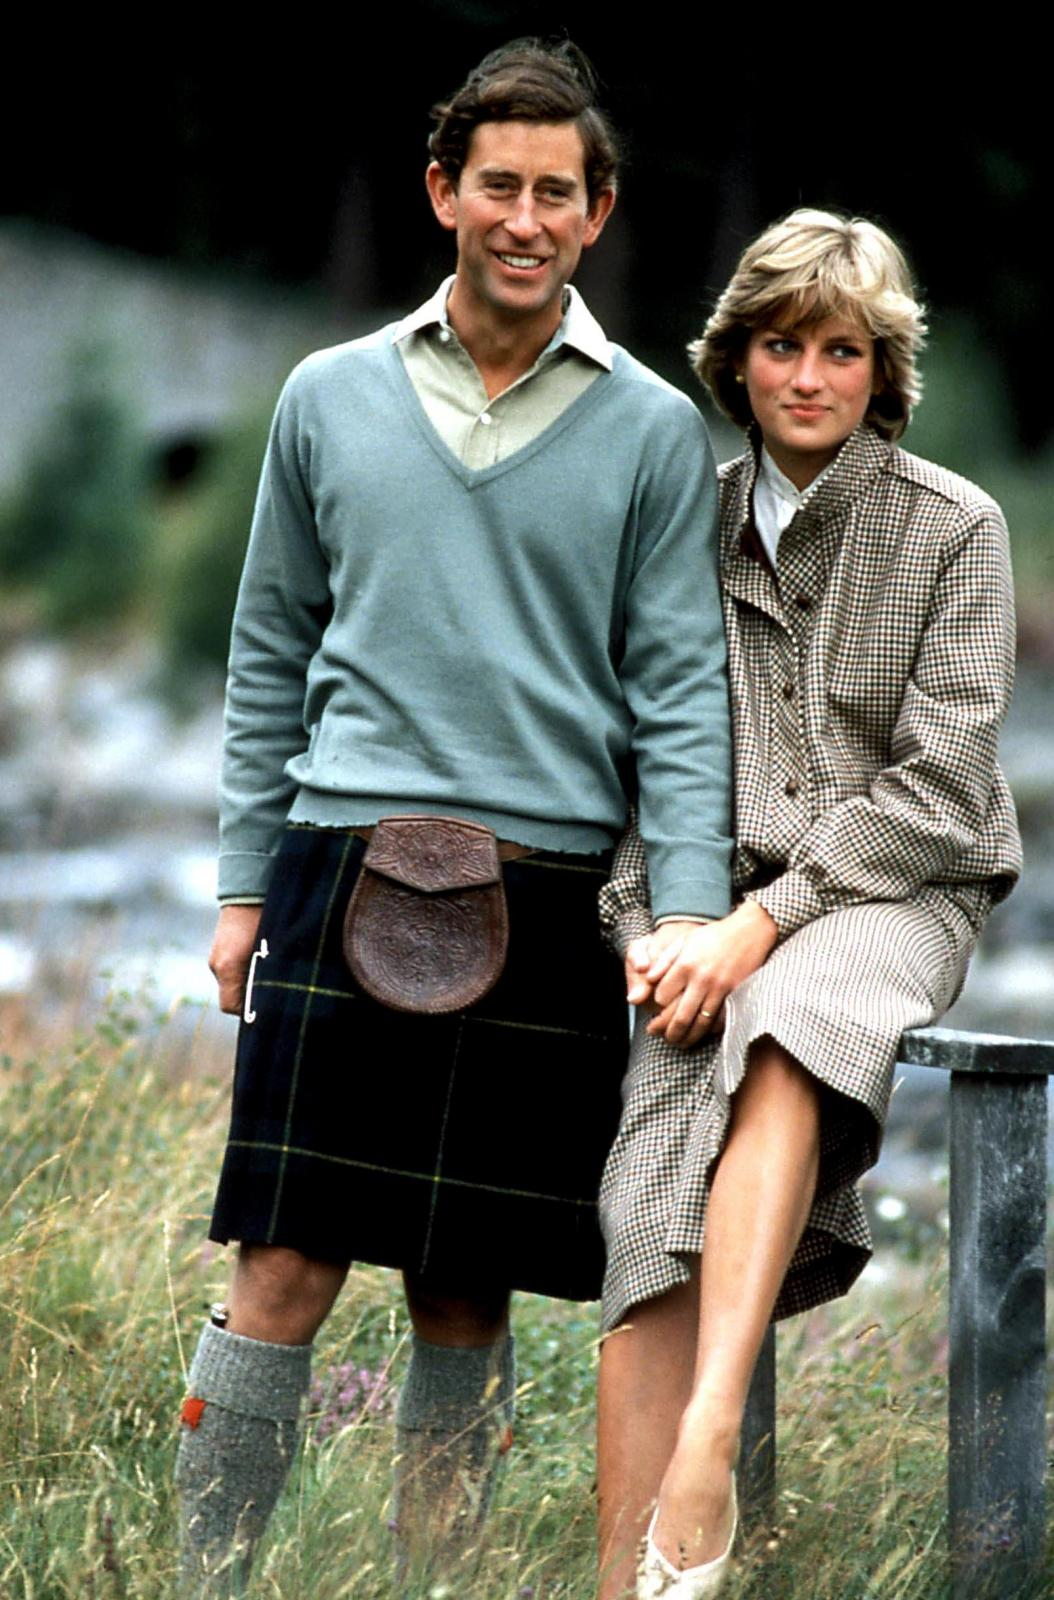 Princess Diana and Prince Charles eventually split in 1995 after 14 years of marriage